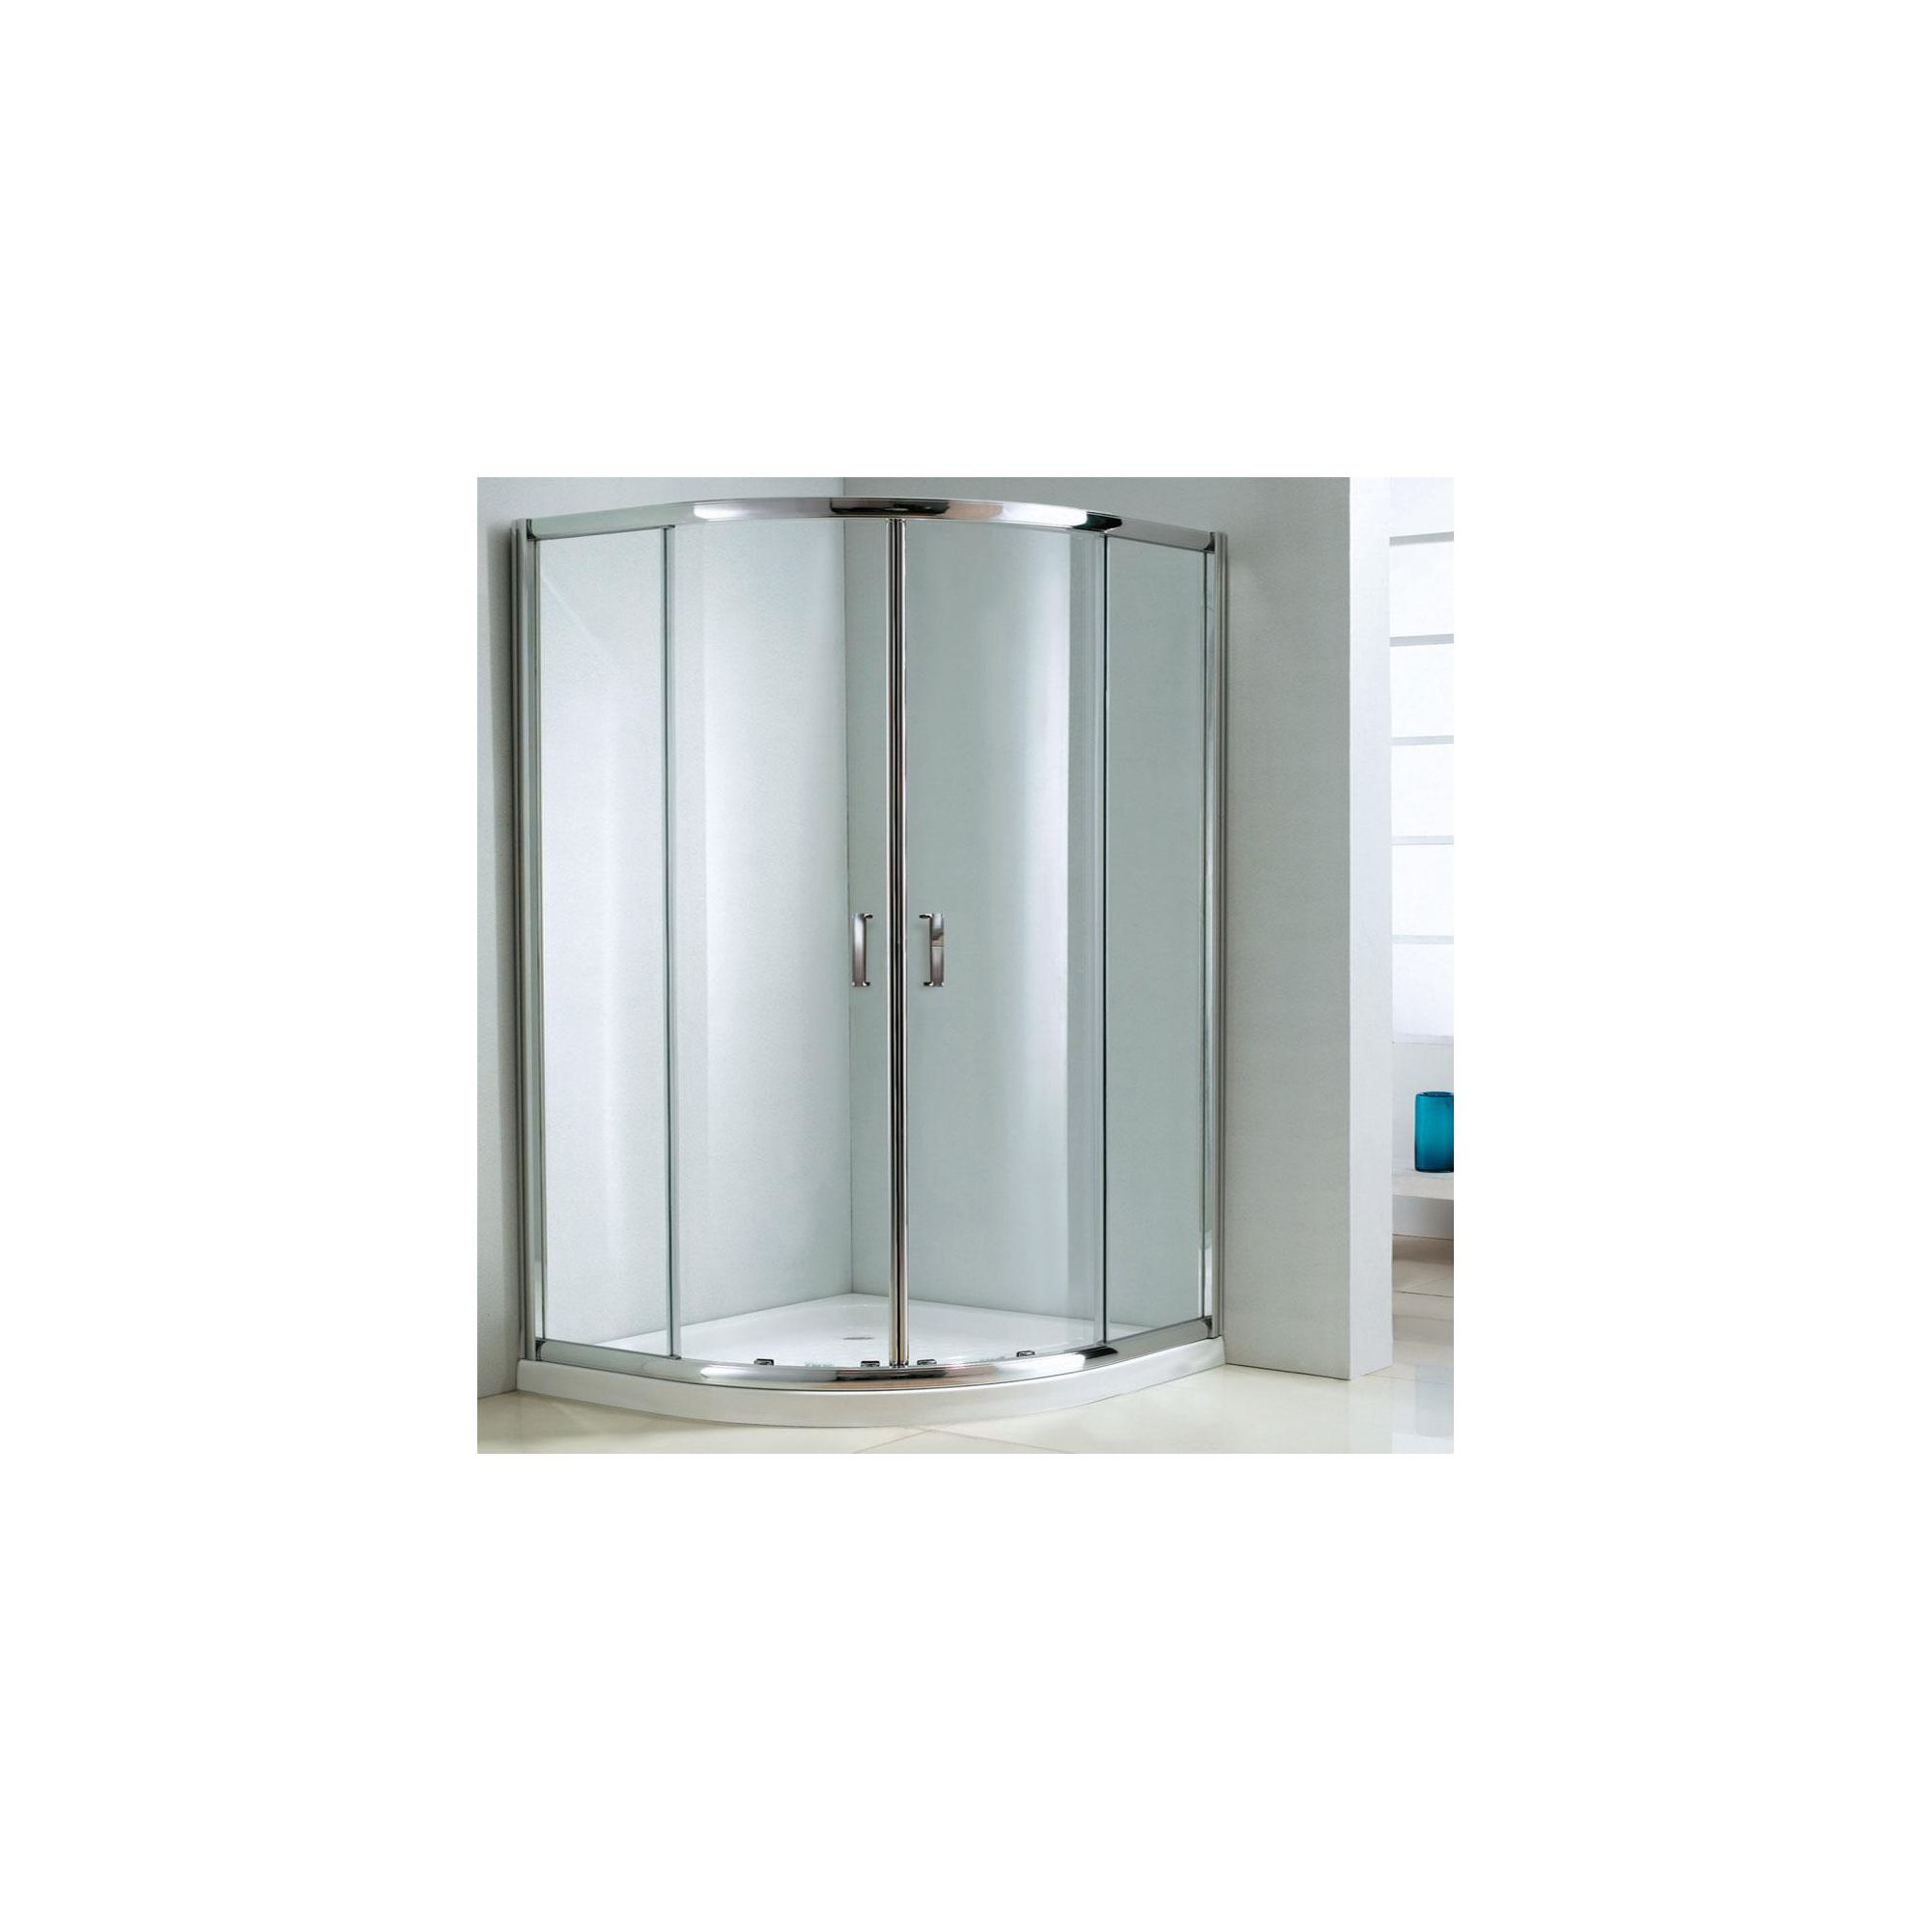 Duchy Style Double Offset Quadrant Shower Door, 1200mm x 900mm, 6mm Glass at Tesco Direct